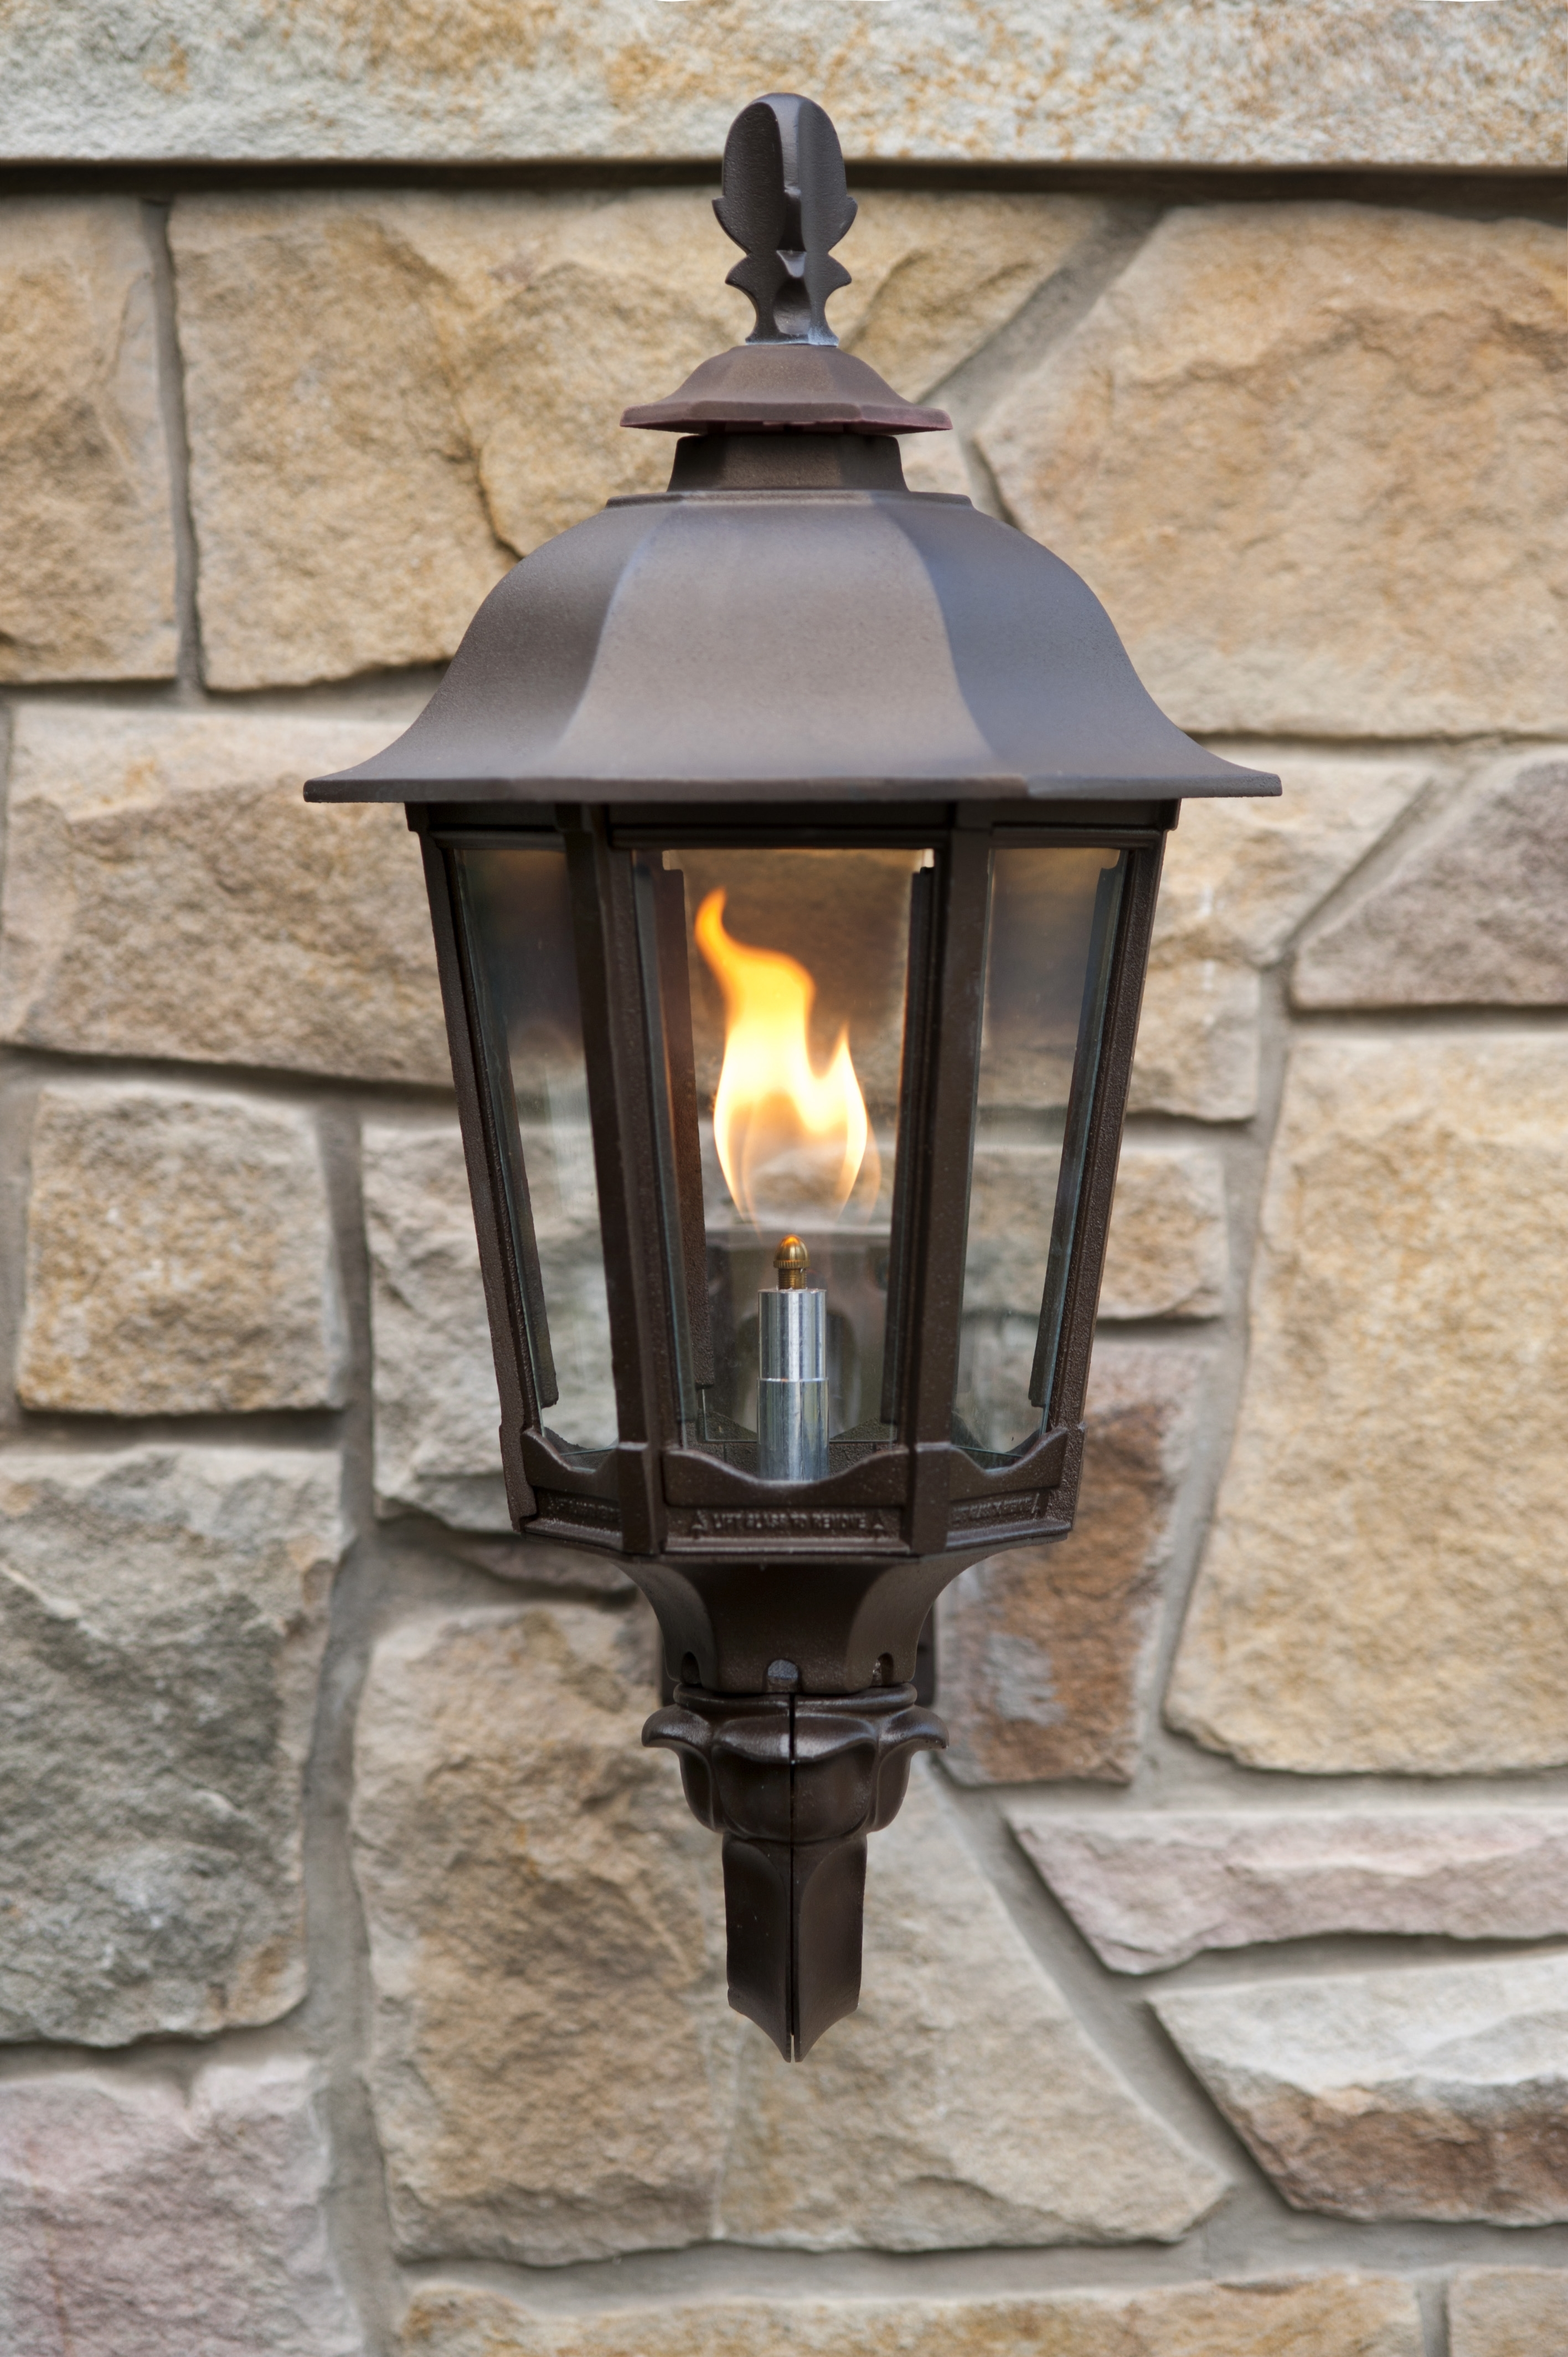 Sumptuous Design Gas Light Fixtures Amazing Ideas Wall Mounted With Regard To Outdoor Wall Gas Lights (#12 of 15)